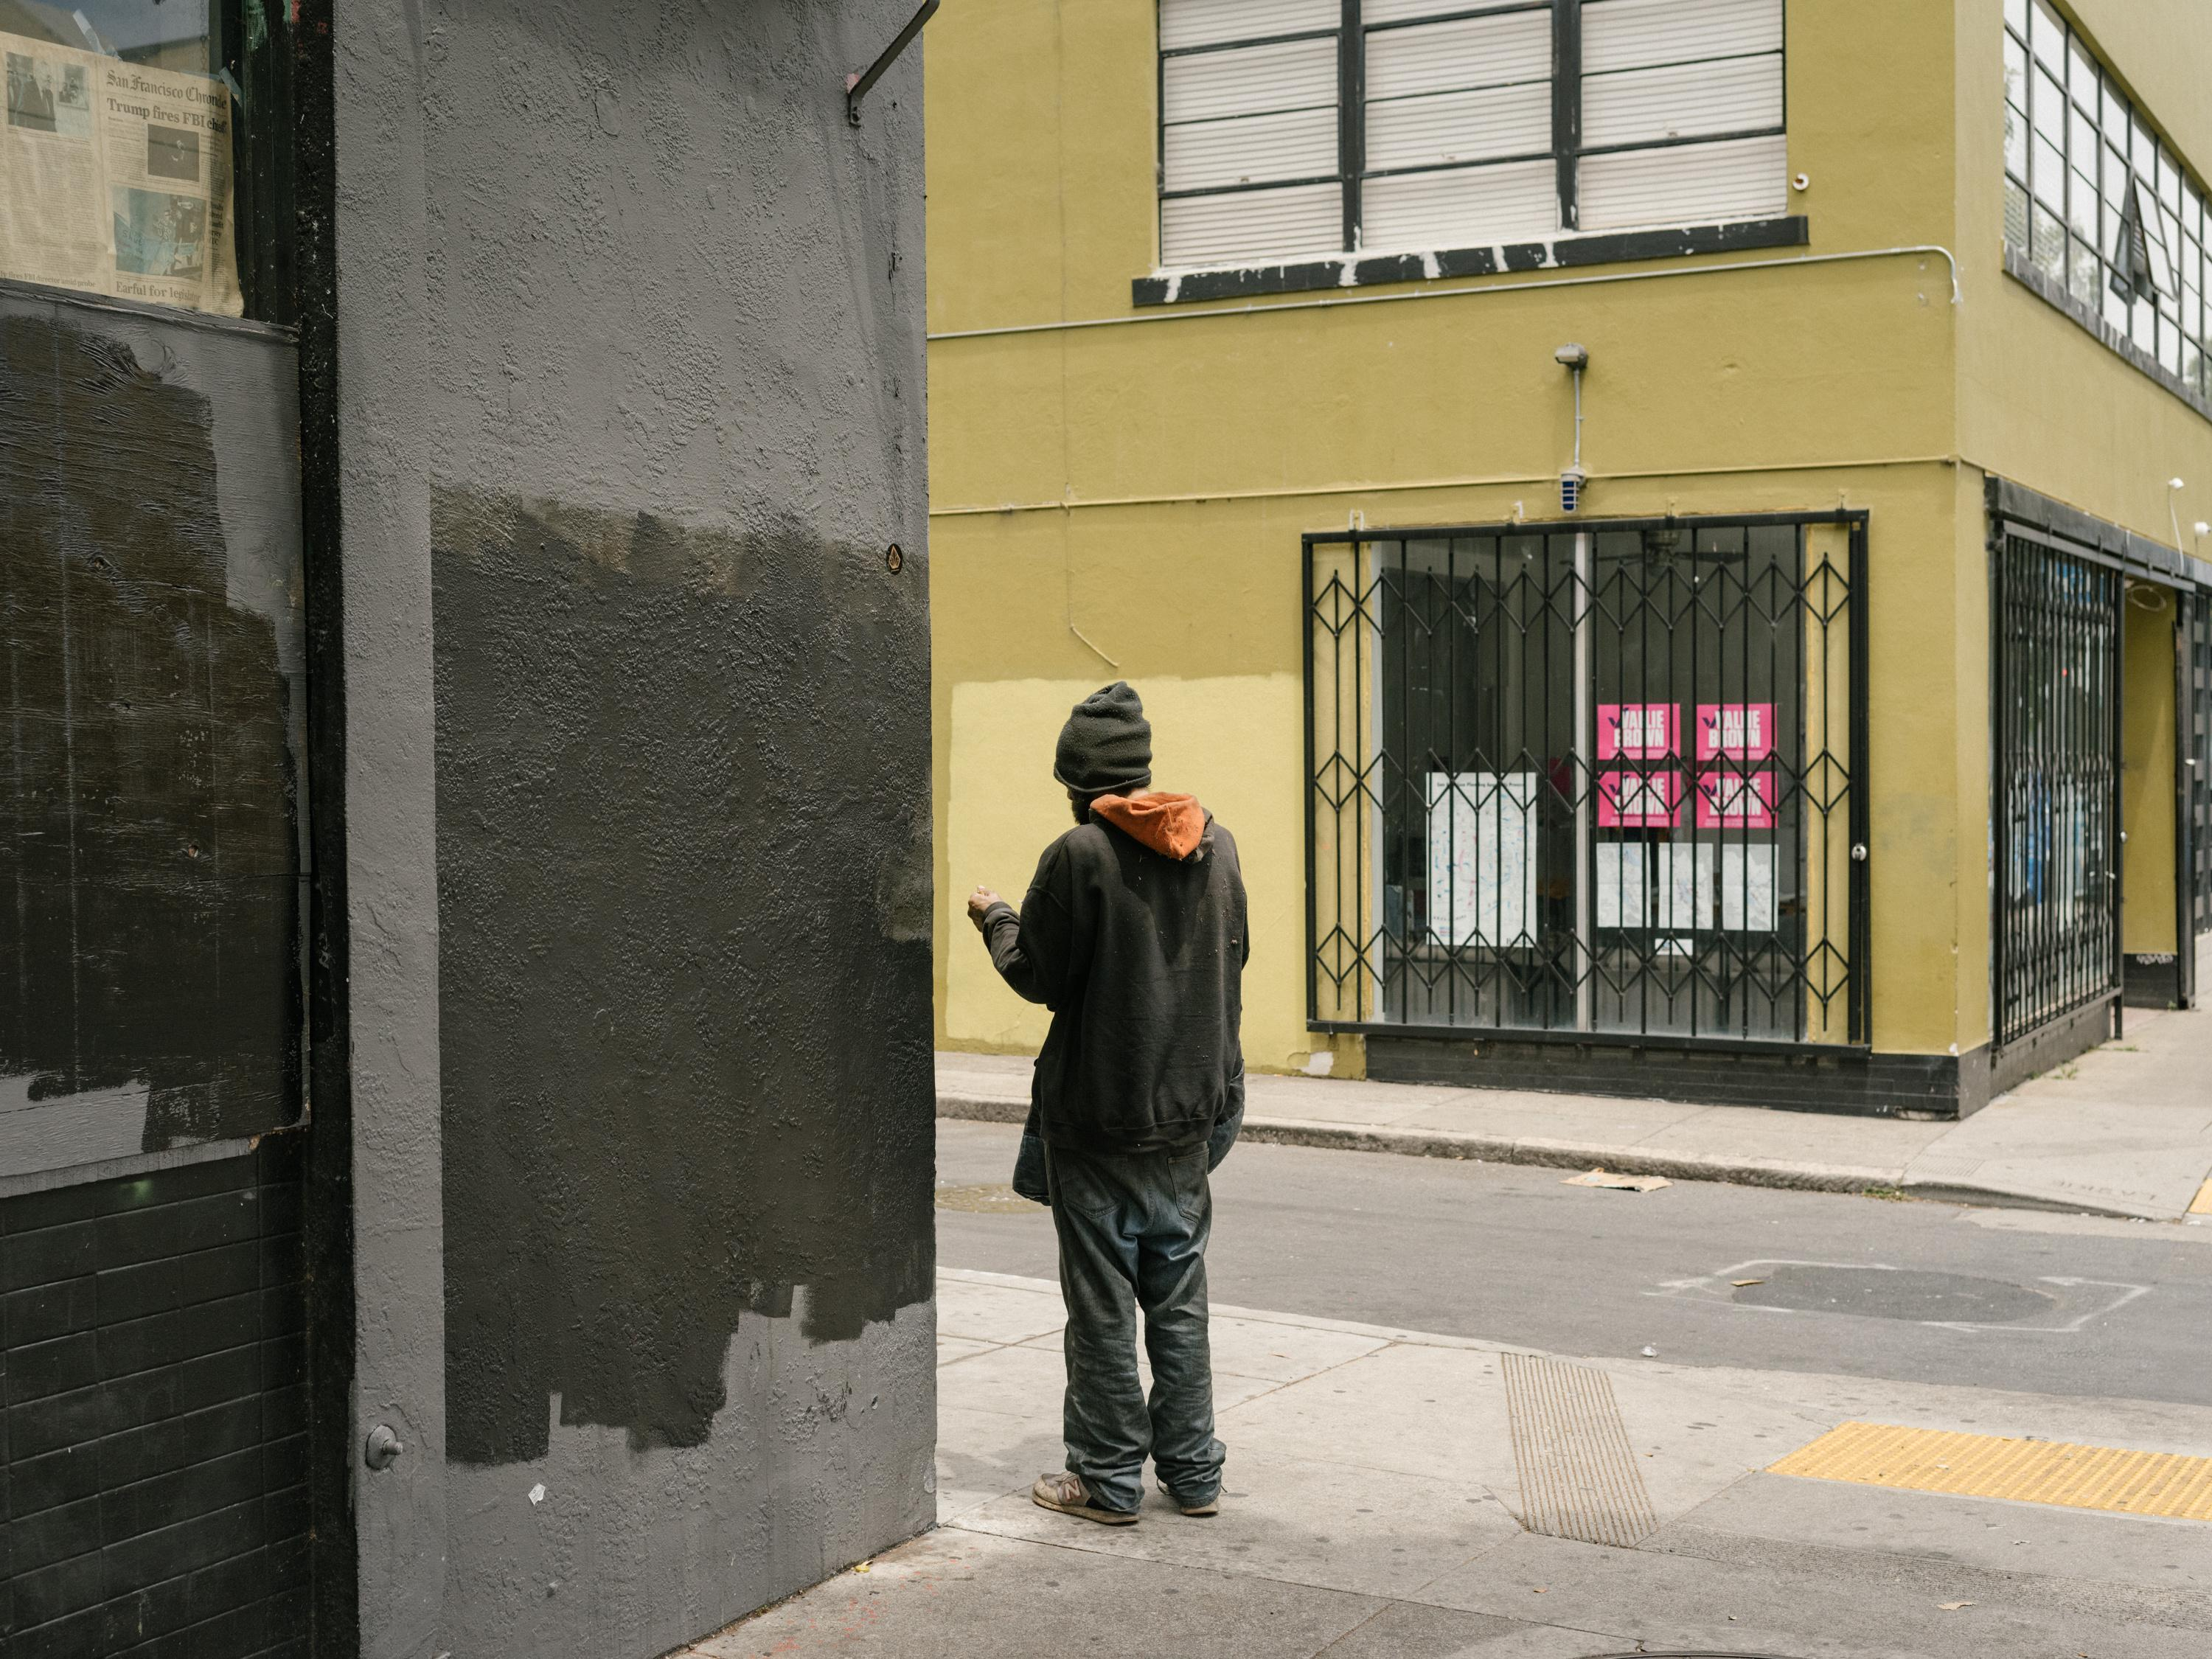 'It's a cycle': the disproportionate toll of homelessness on San Francisco's African Americans